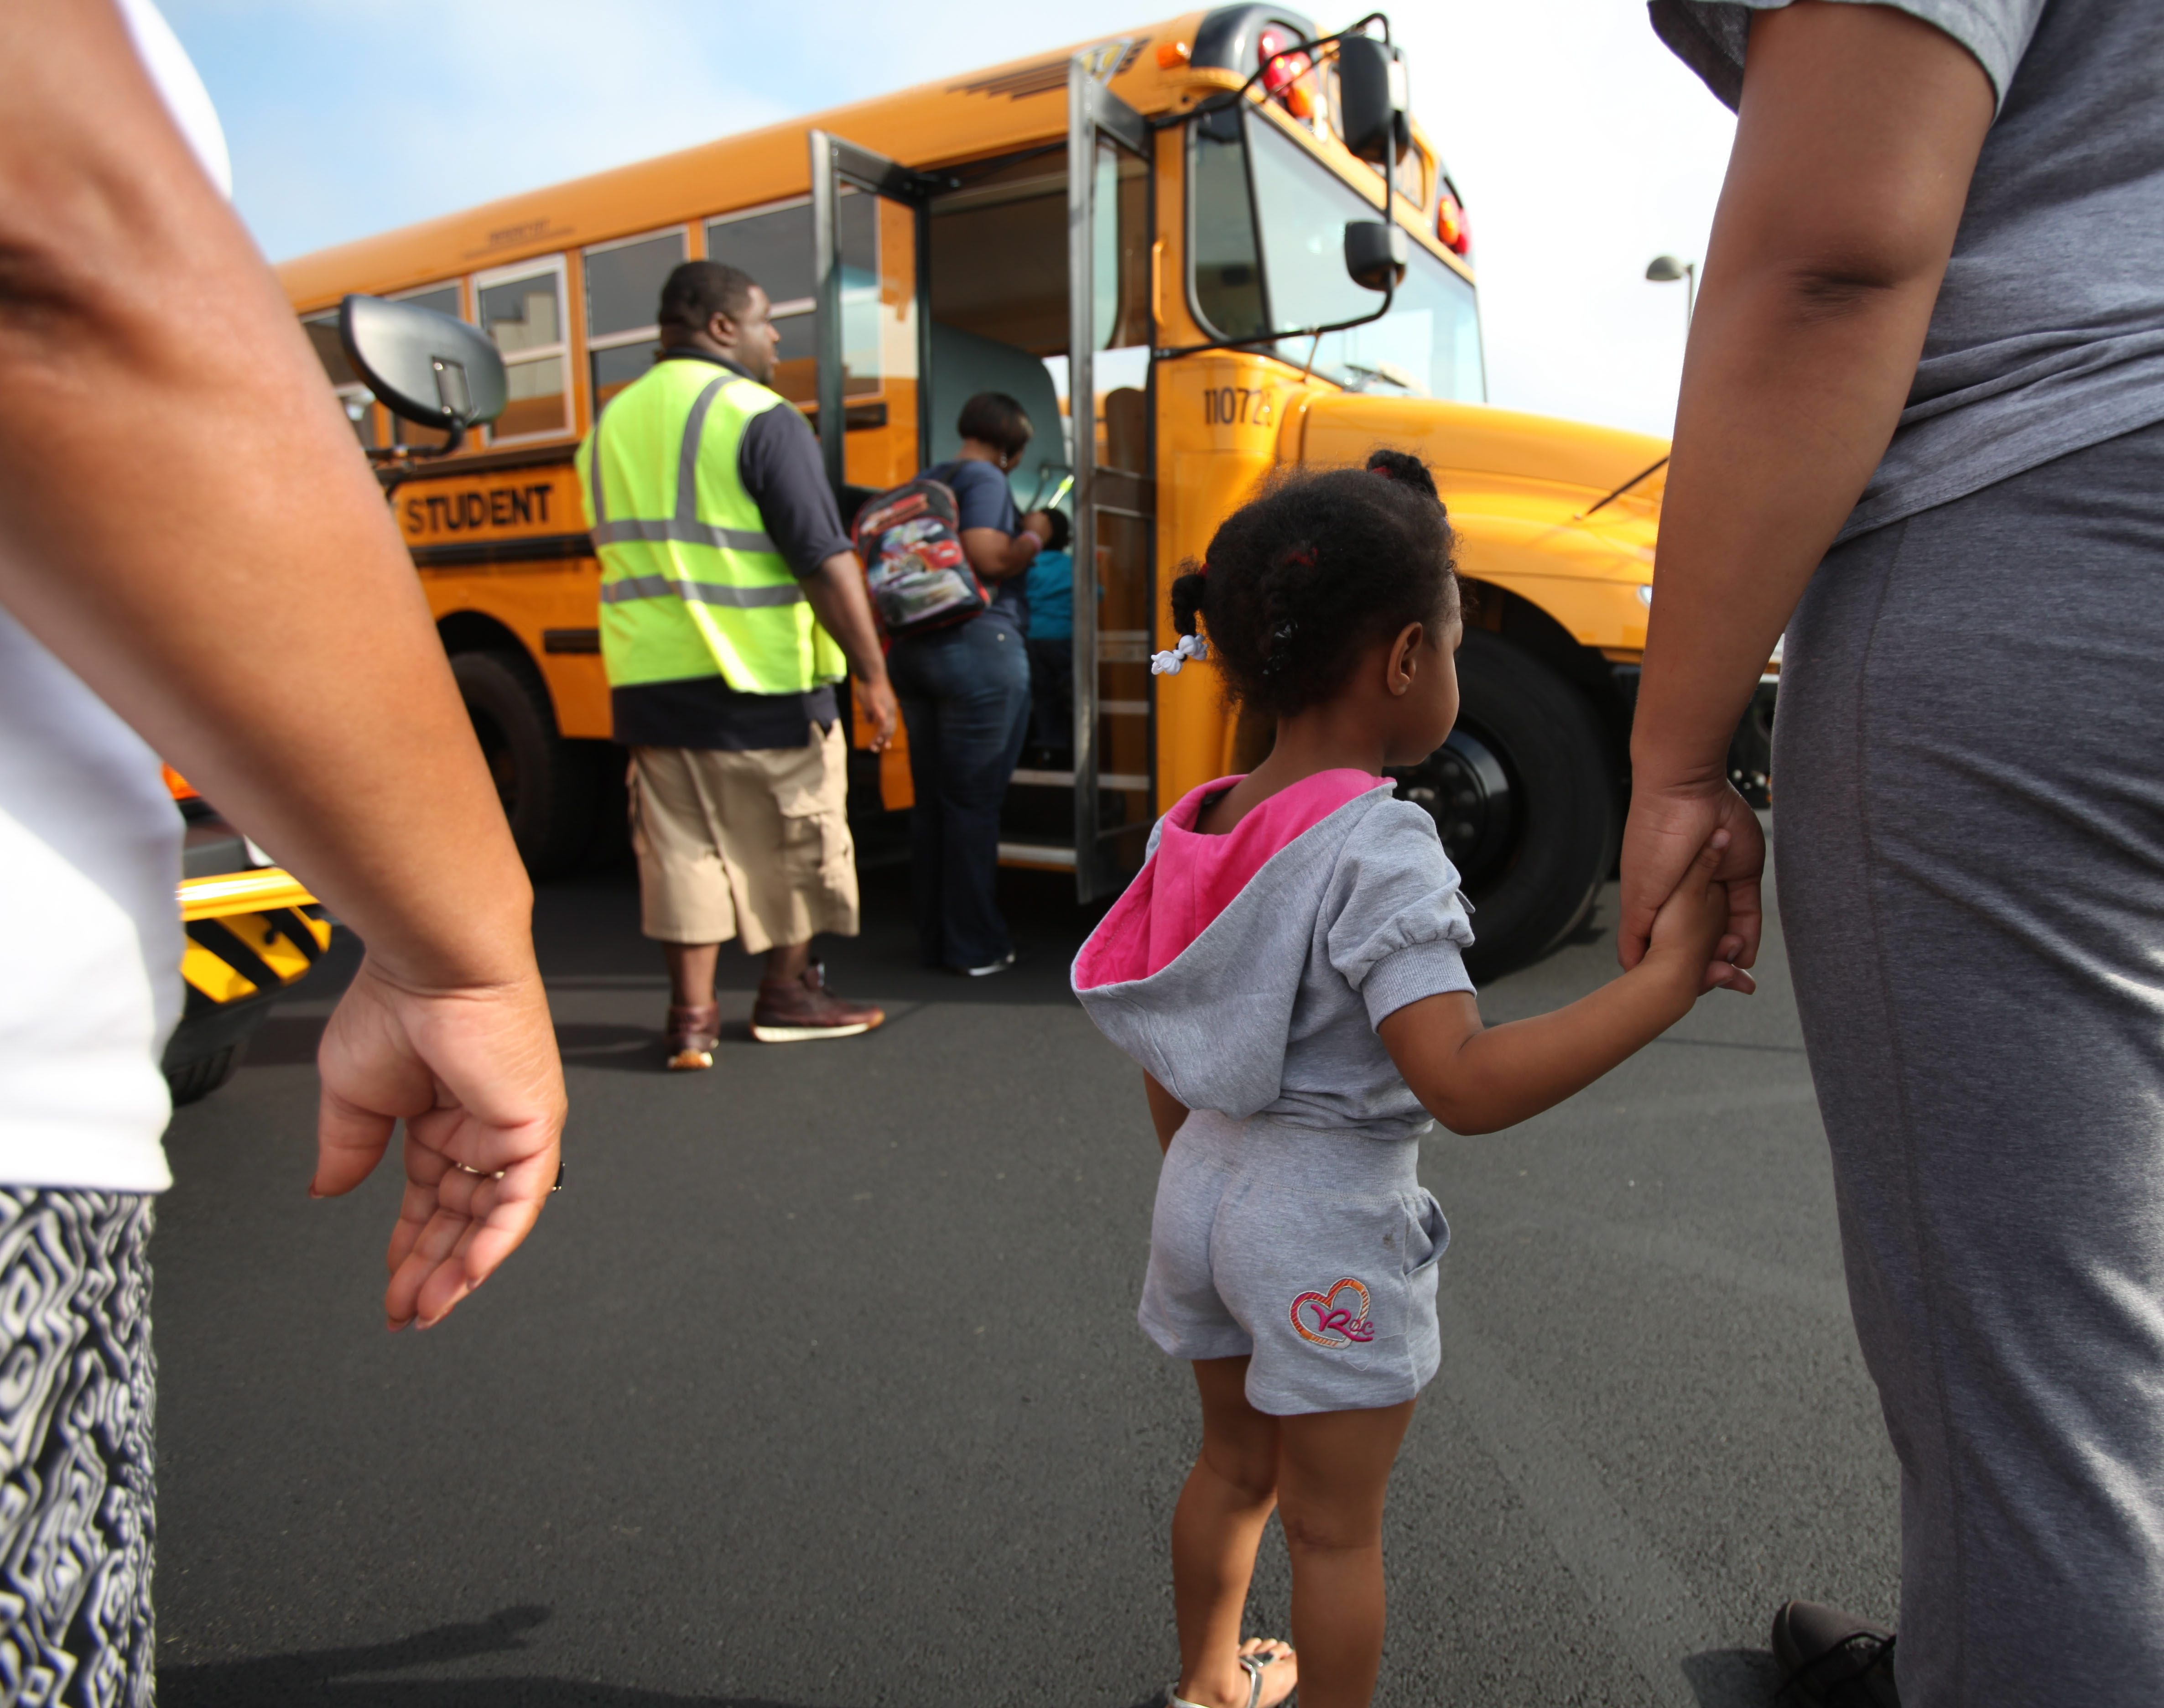 As children and parents begin another year in the Buffalo Public Schools, the decades-old dialogue on busing students to achieve integration has taken a new turn as the system struggles to find the right balance of school choice and neighborhood structure.